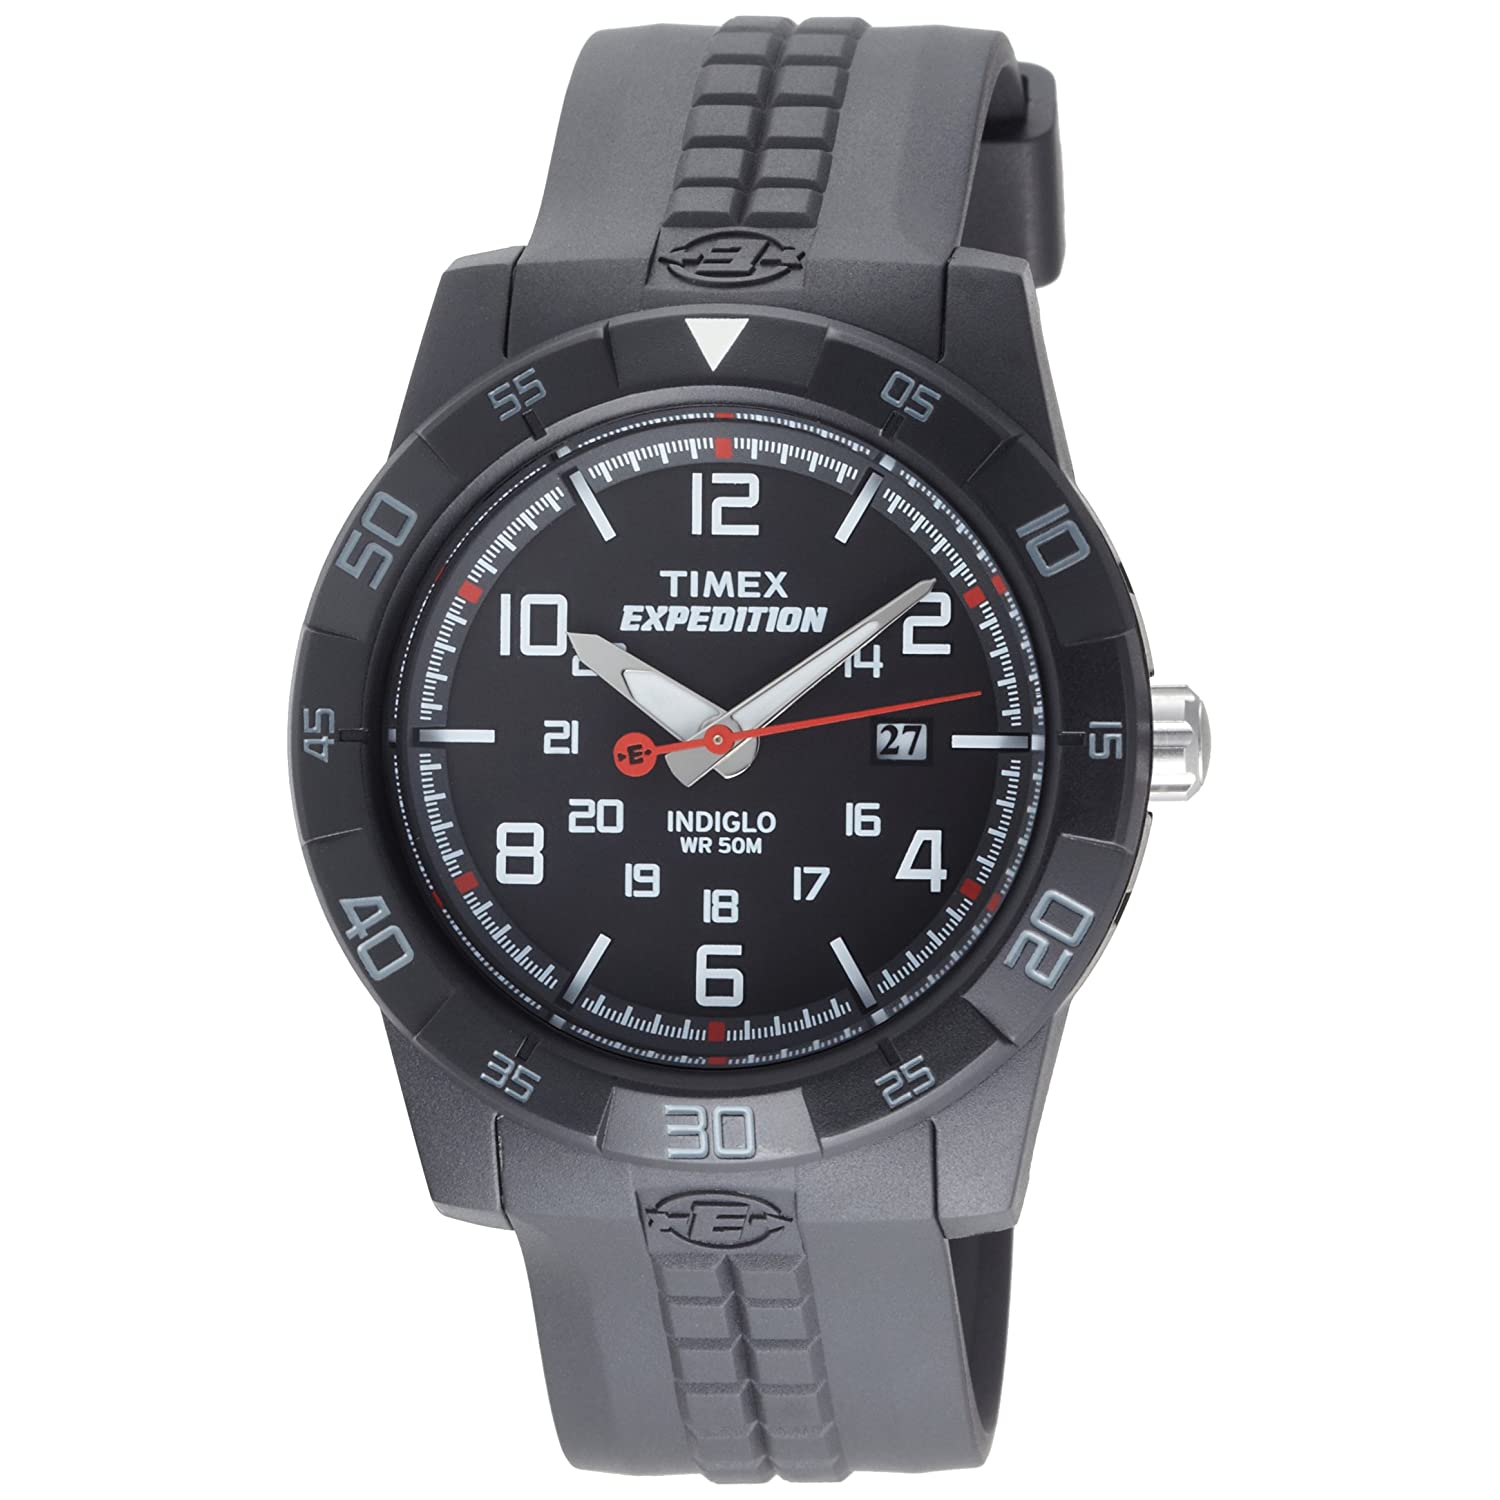 Cheap cool watches 408inc blog for Cheap watches